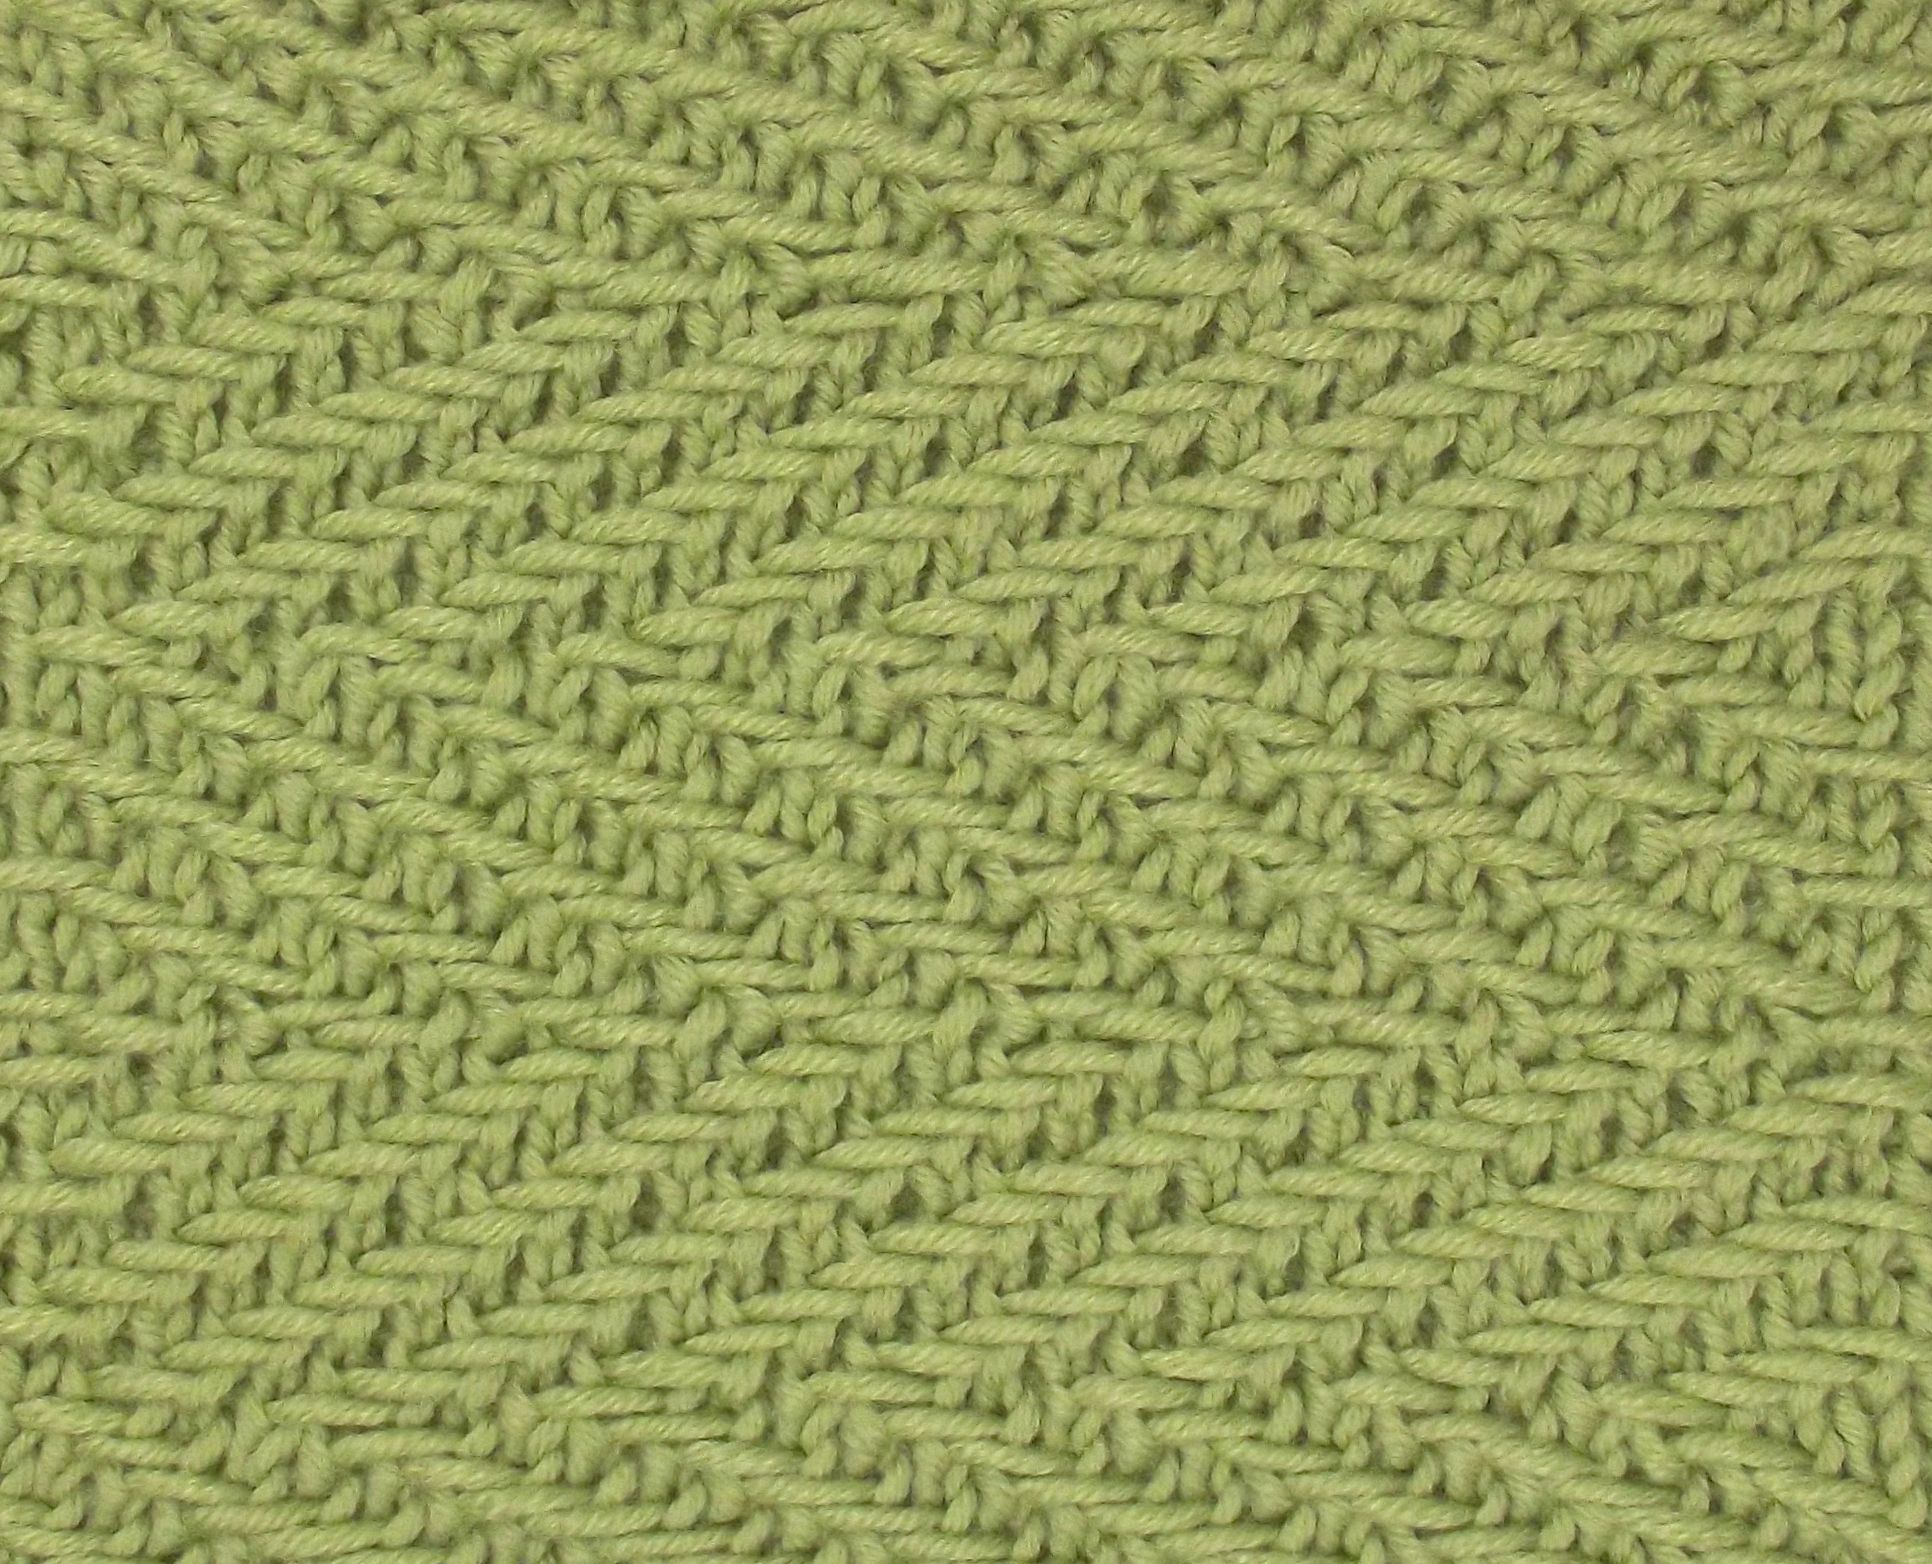 Woven Transverse Herringbone stitch can be found in the Bobbles ...